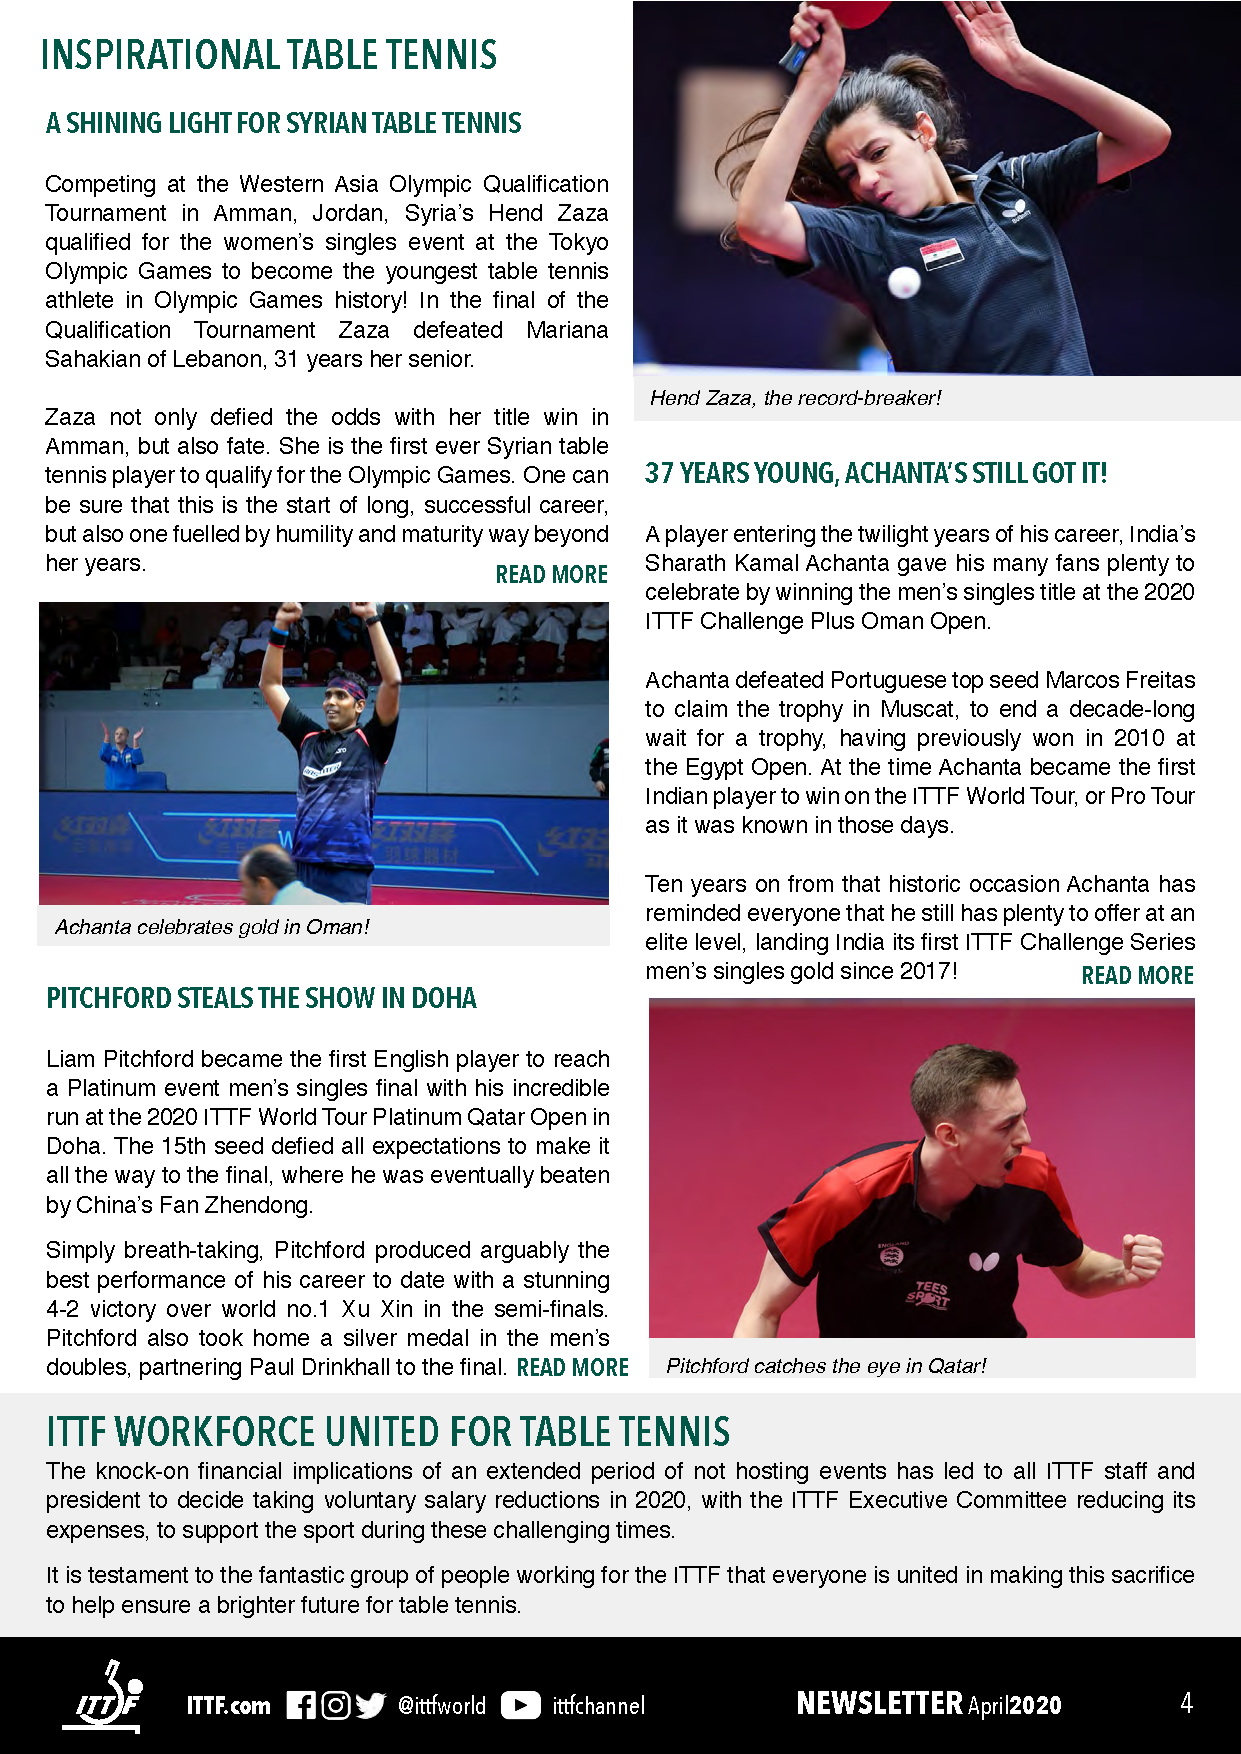 ITTF_Newsletter_02_APR-2020_0_Page_4